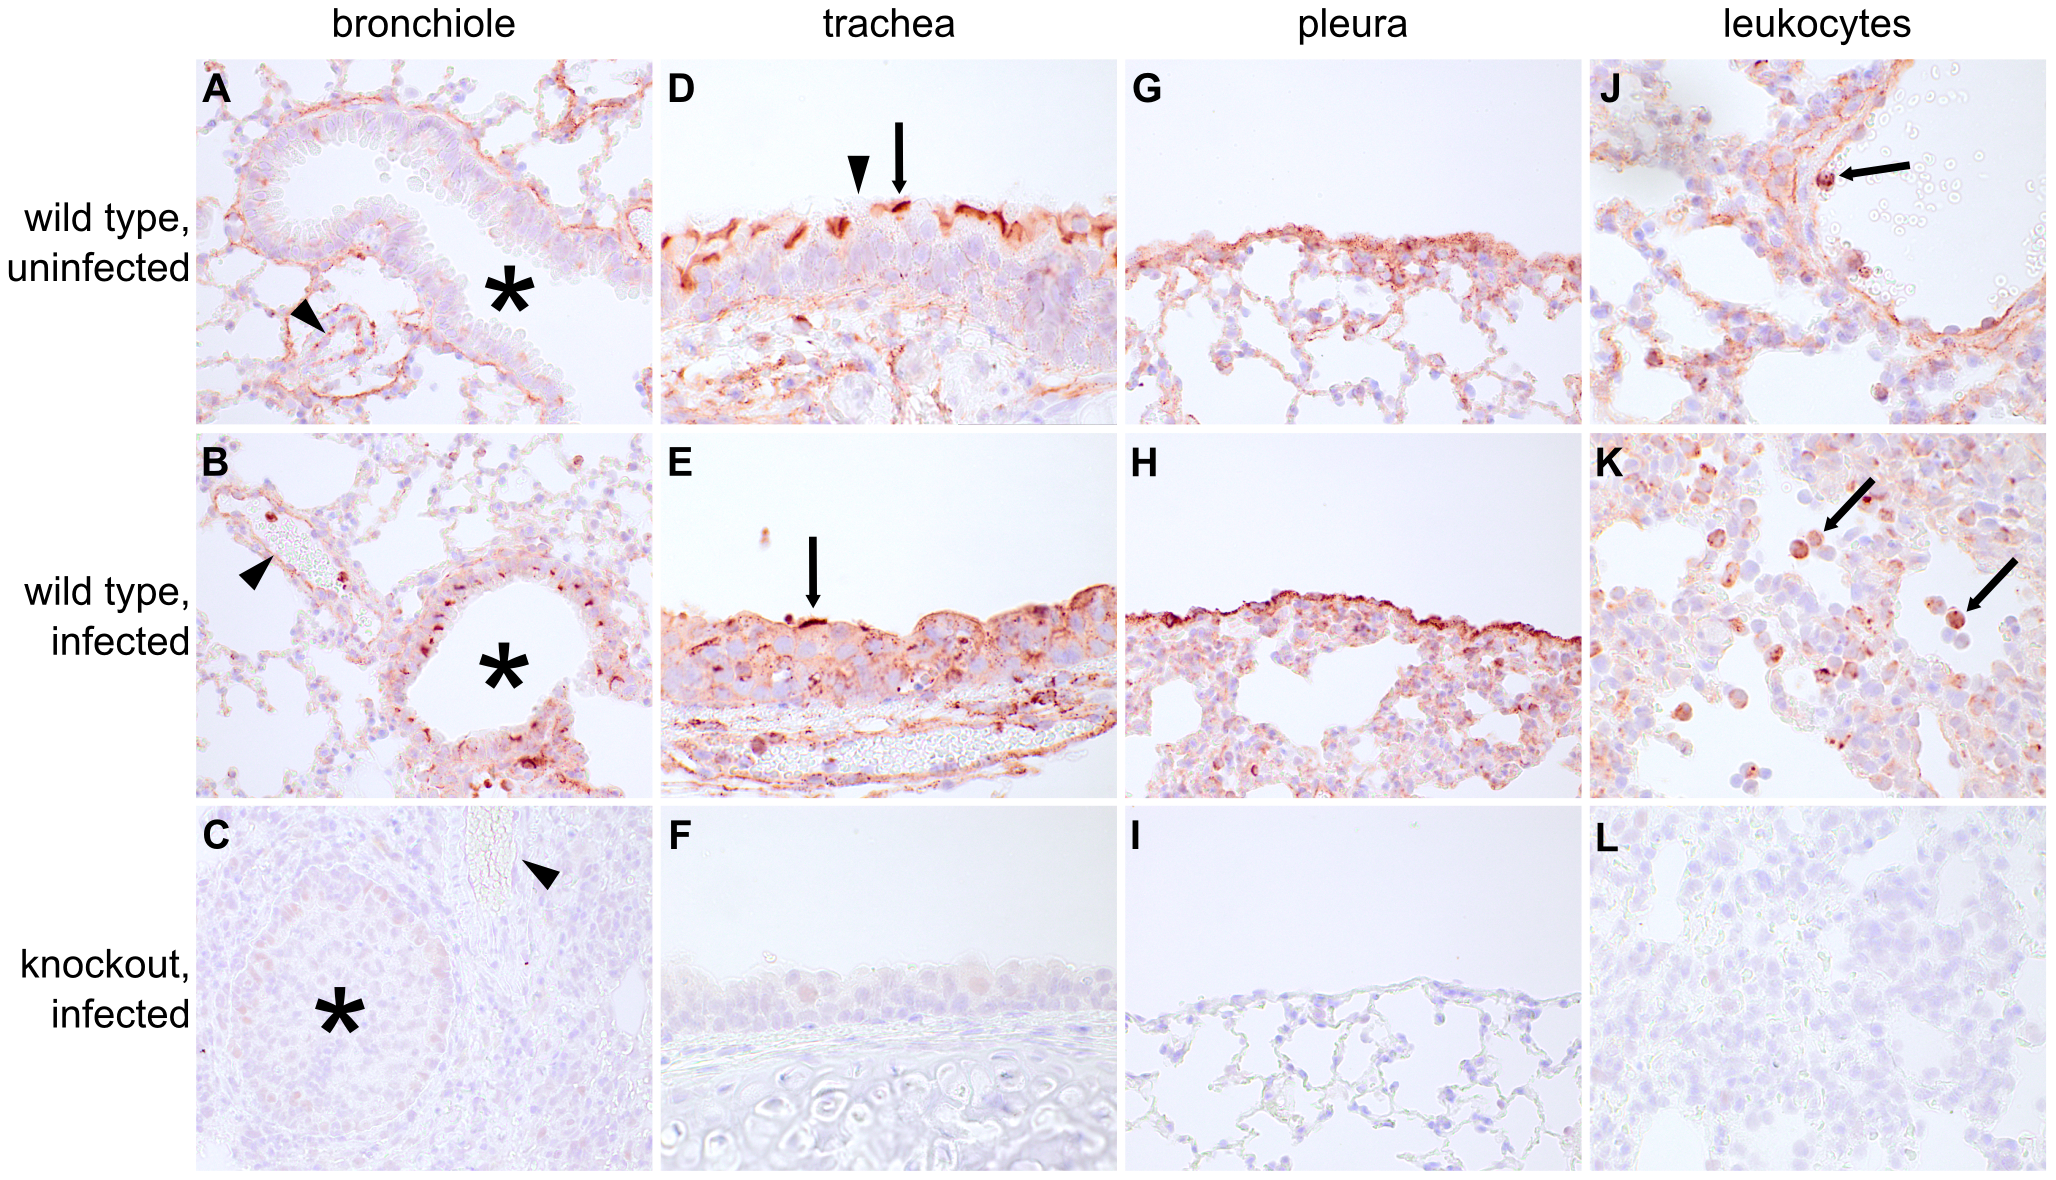 Ifitm3 is constitutively expressed by many respiratory tissues and induced in lower airway epithelium by influenza.